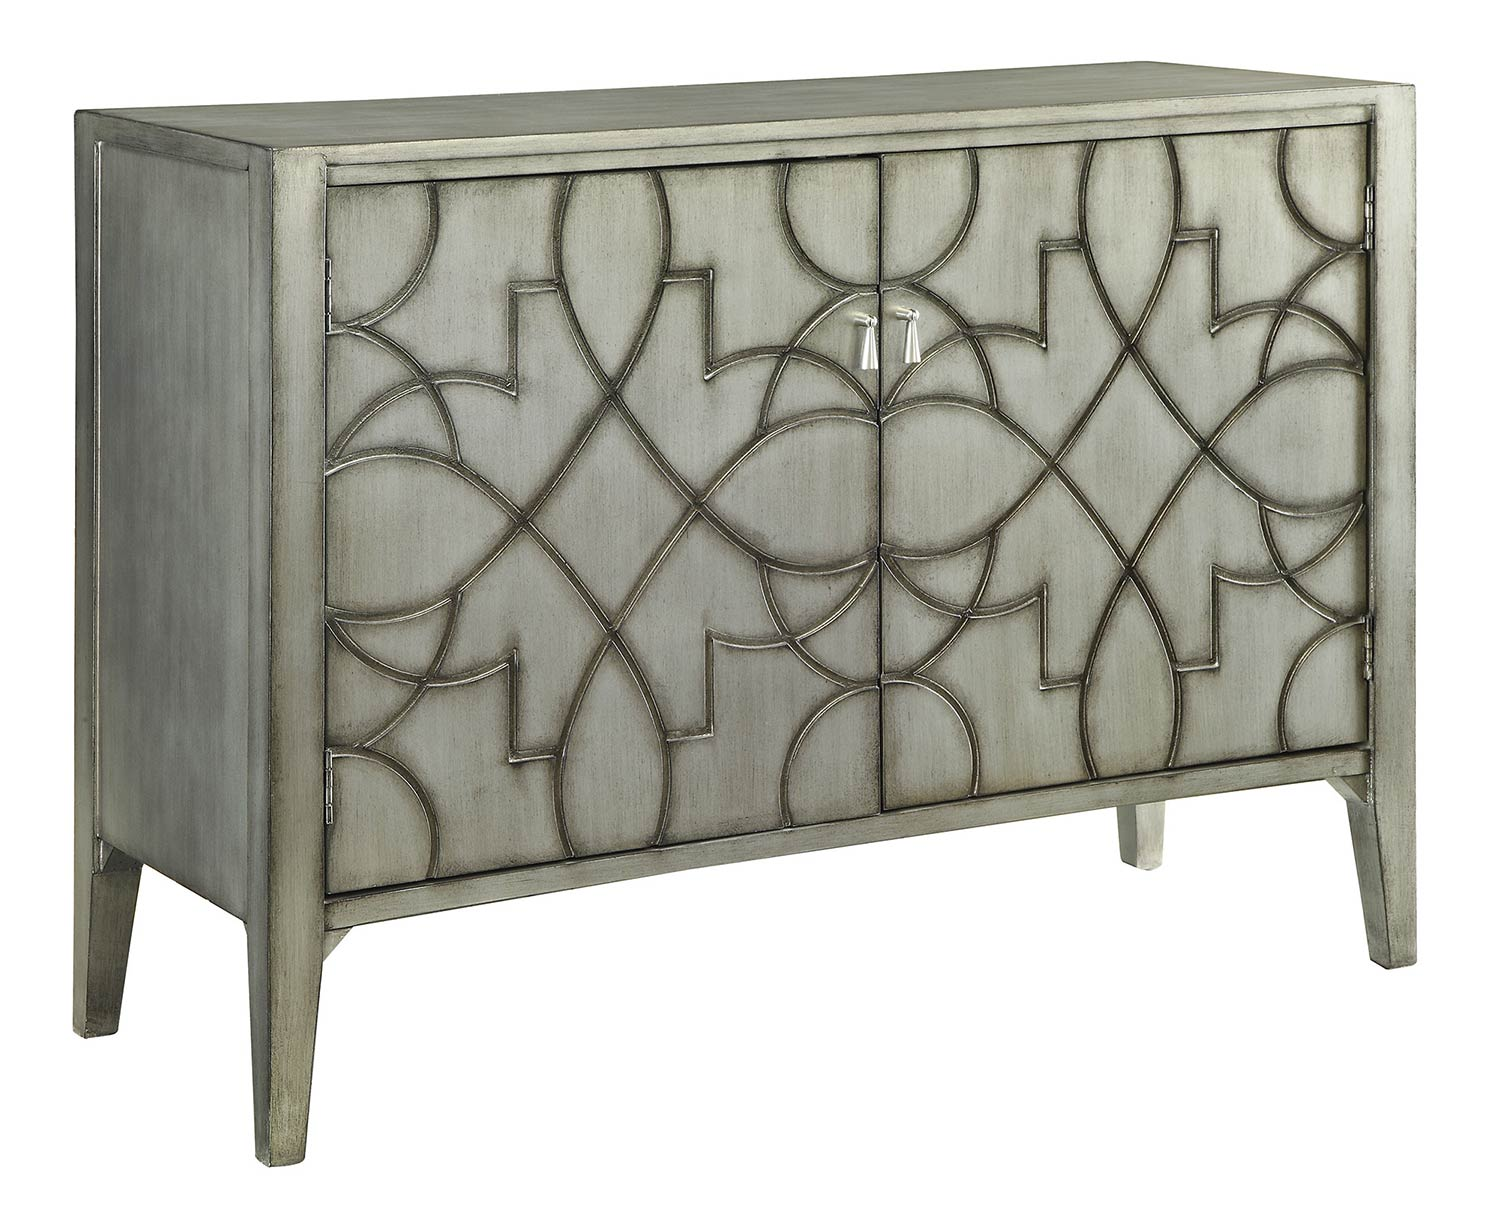 Coaster 950631 Accent Cabinet - Grey